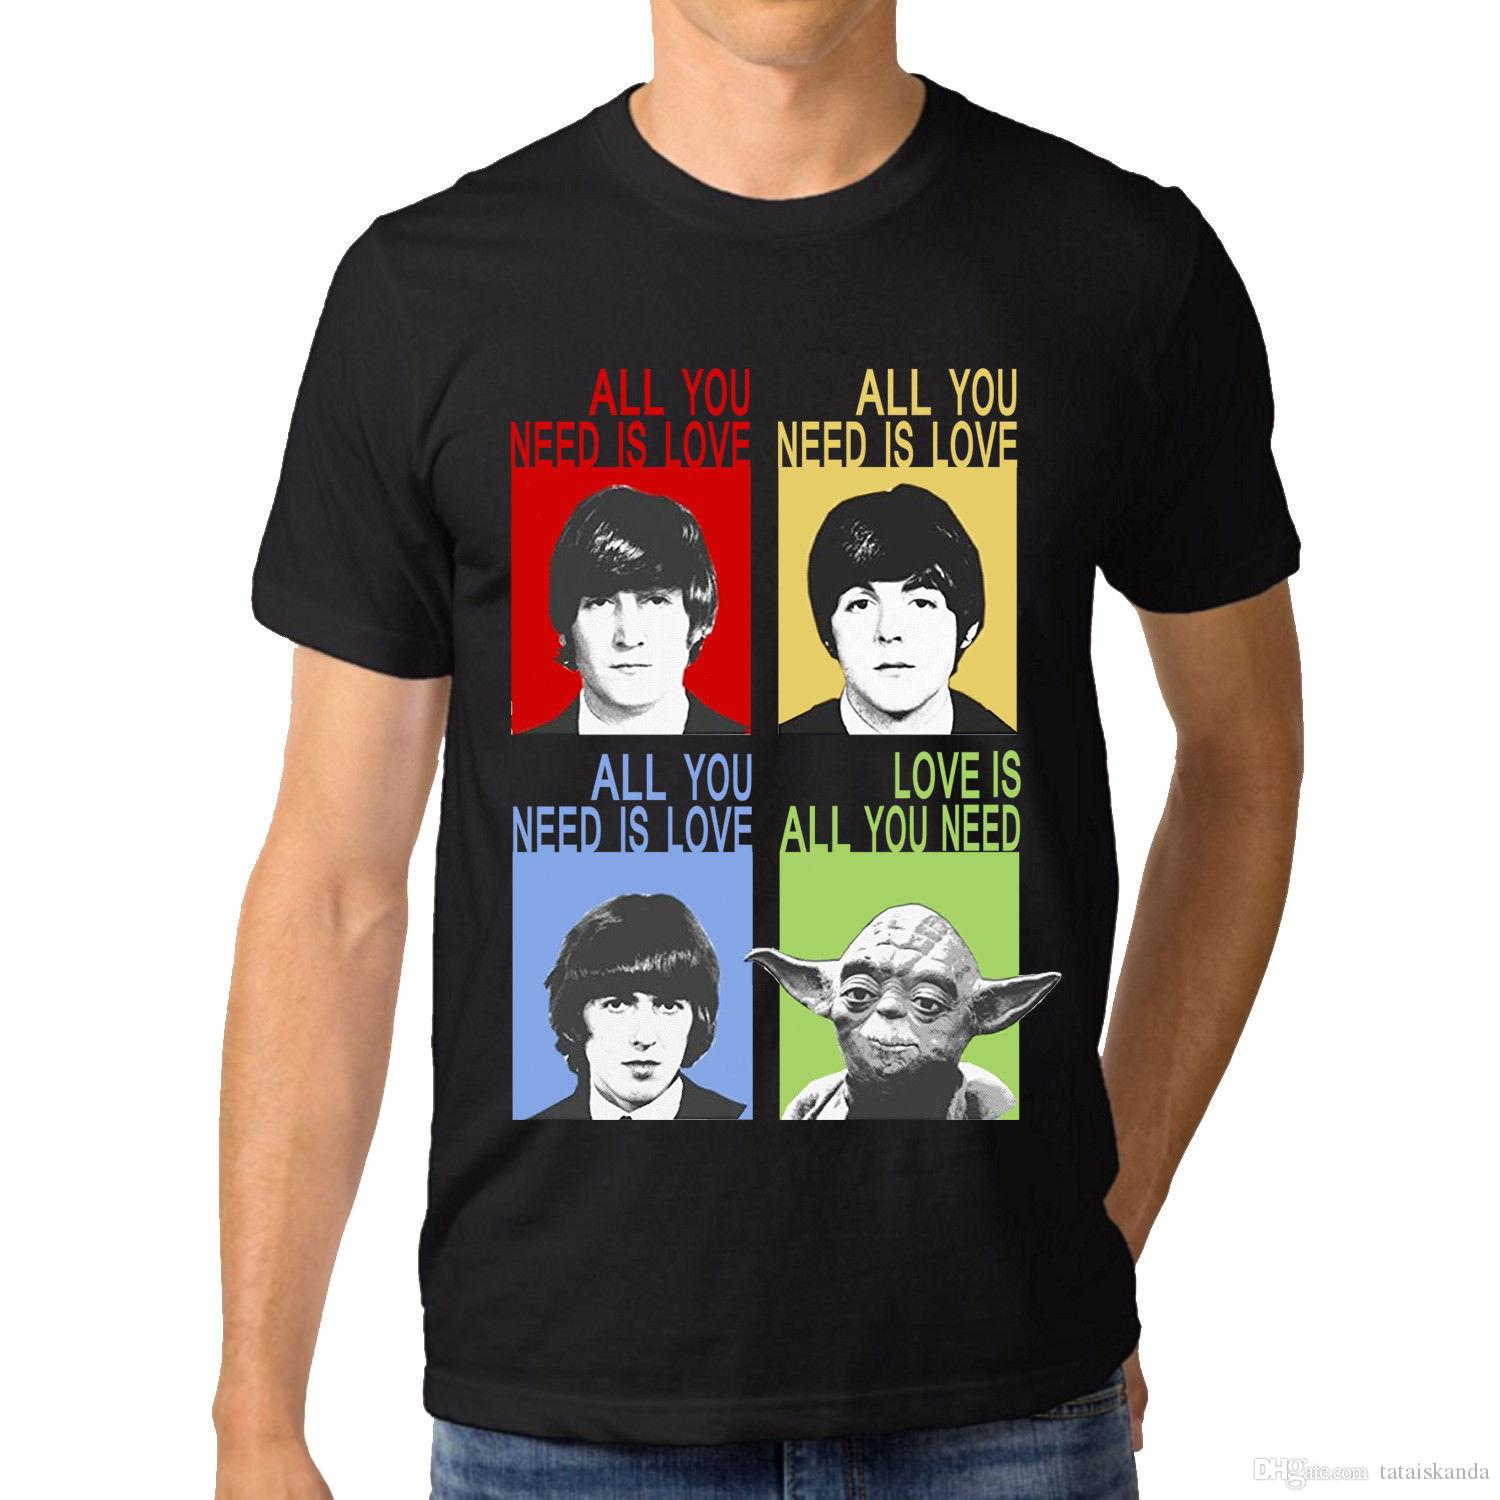 cb08f445e Funny All You Need Is Love The Beatles Combo Customer 100 Cotton T Shirt  For Men Mens Formal Shirts Buy T Shirts Online From Tataiskanda, $10.36|  DHgate.Com